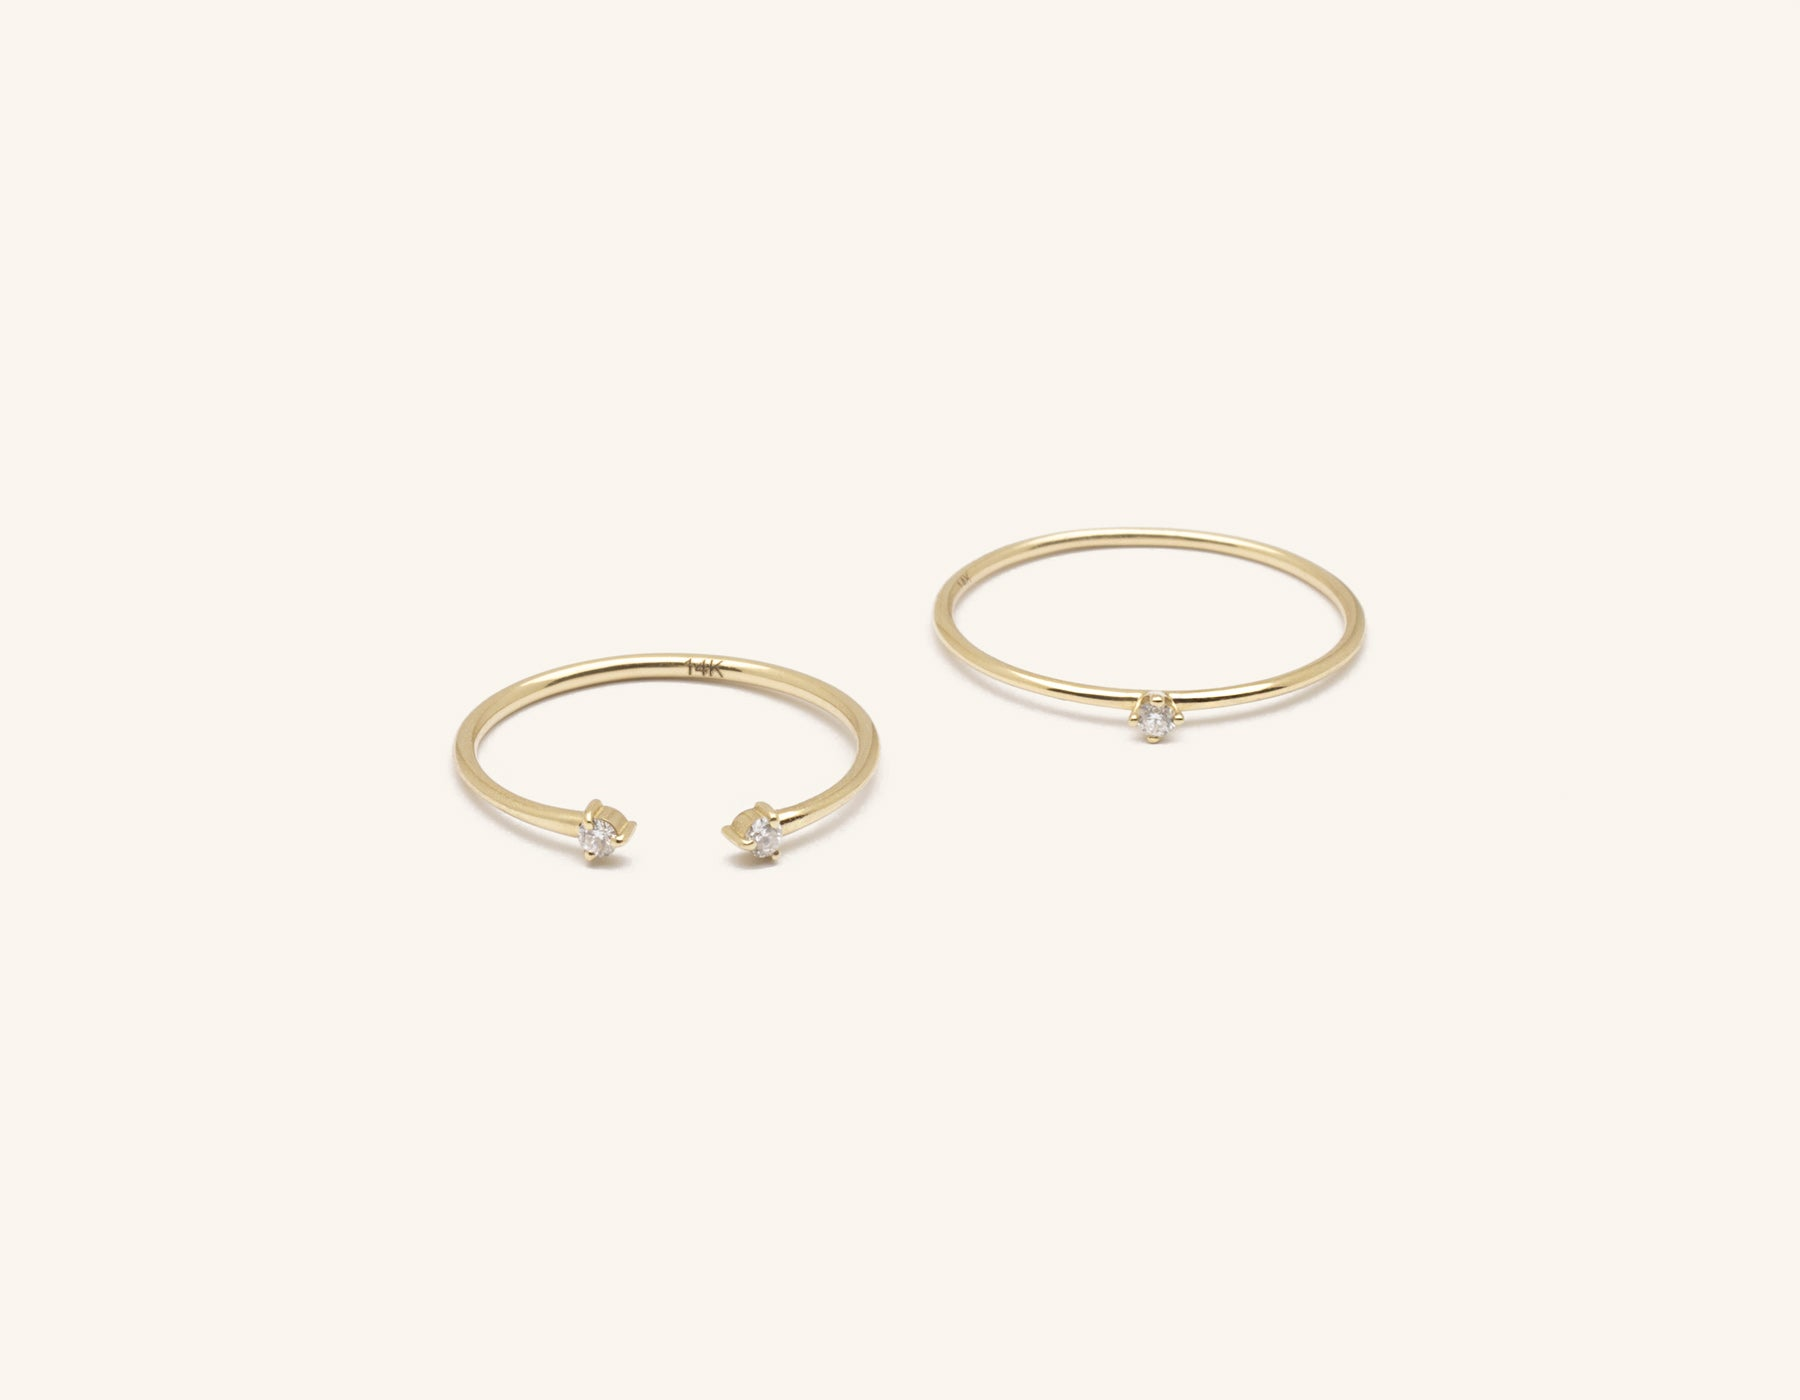 Vrai & Oro modern minimalist Diamond Constellation Stack rings round stacker with diamond dot cuff, 14K Yellow Gold